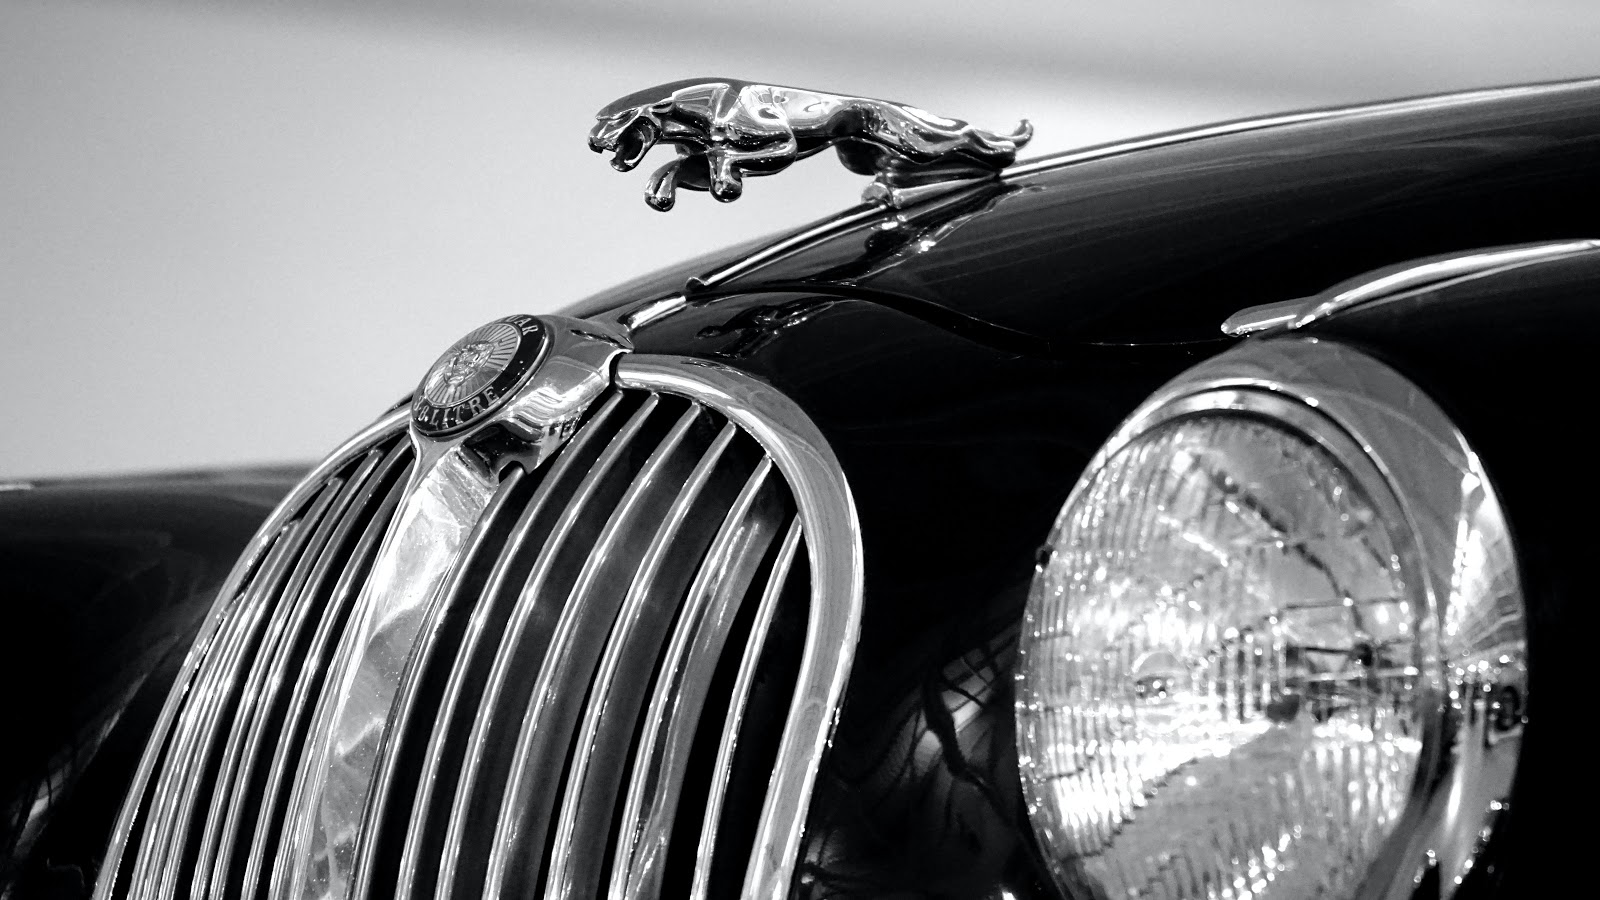 auto-automobile-automotive-black-and-white-car-pictures